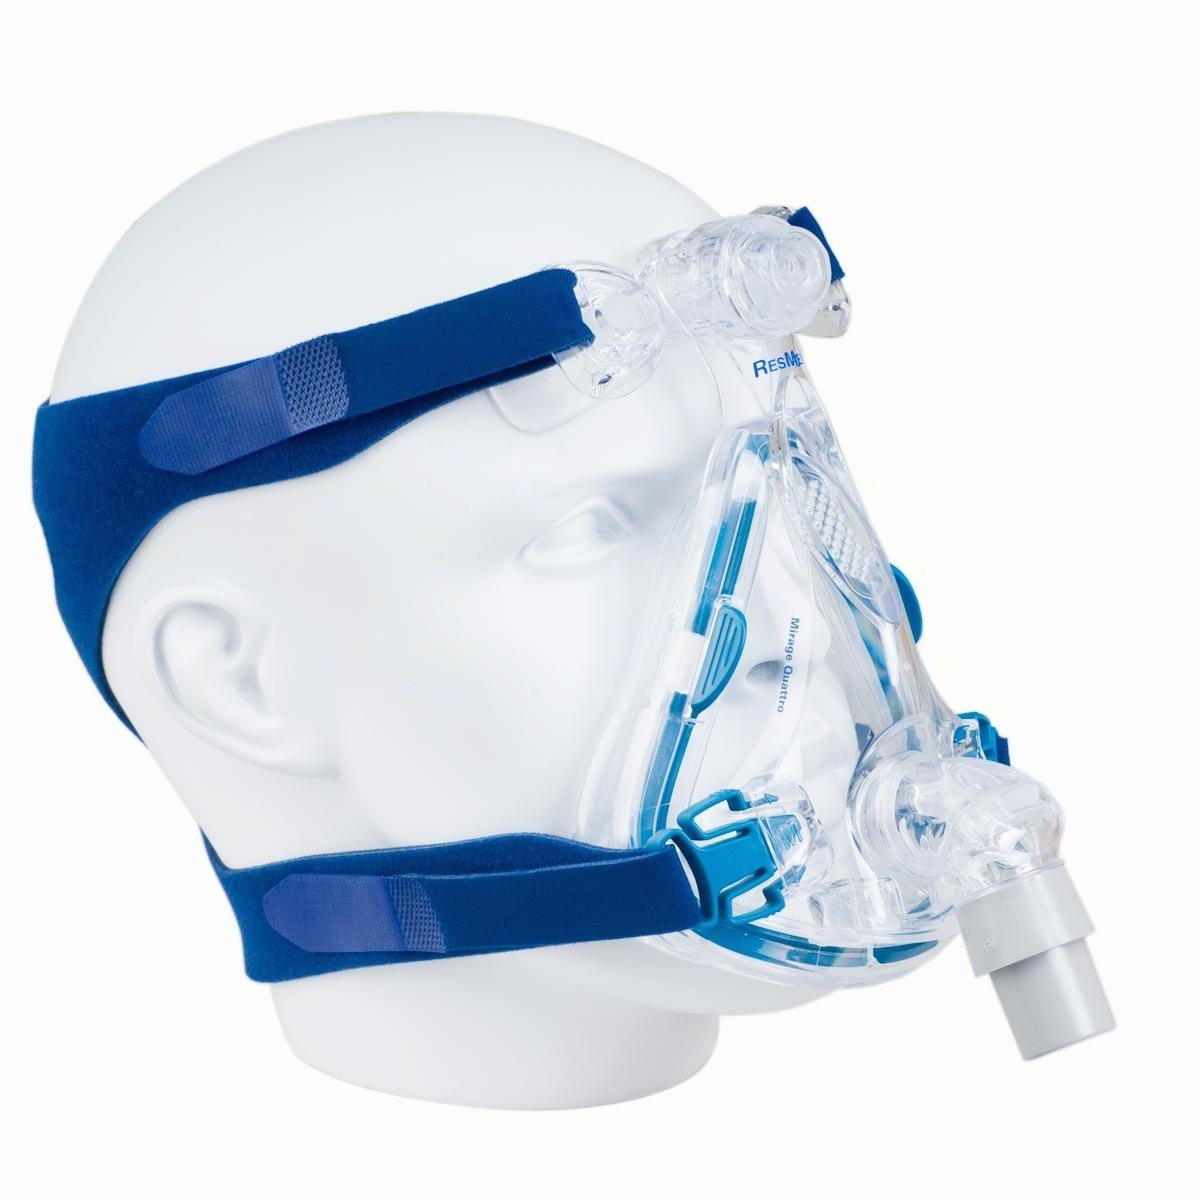 40% off -- Brand New ResMed Mirage Quattro Full Face CPAP Mask with Headgear, Size L